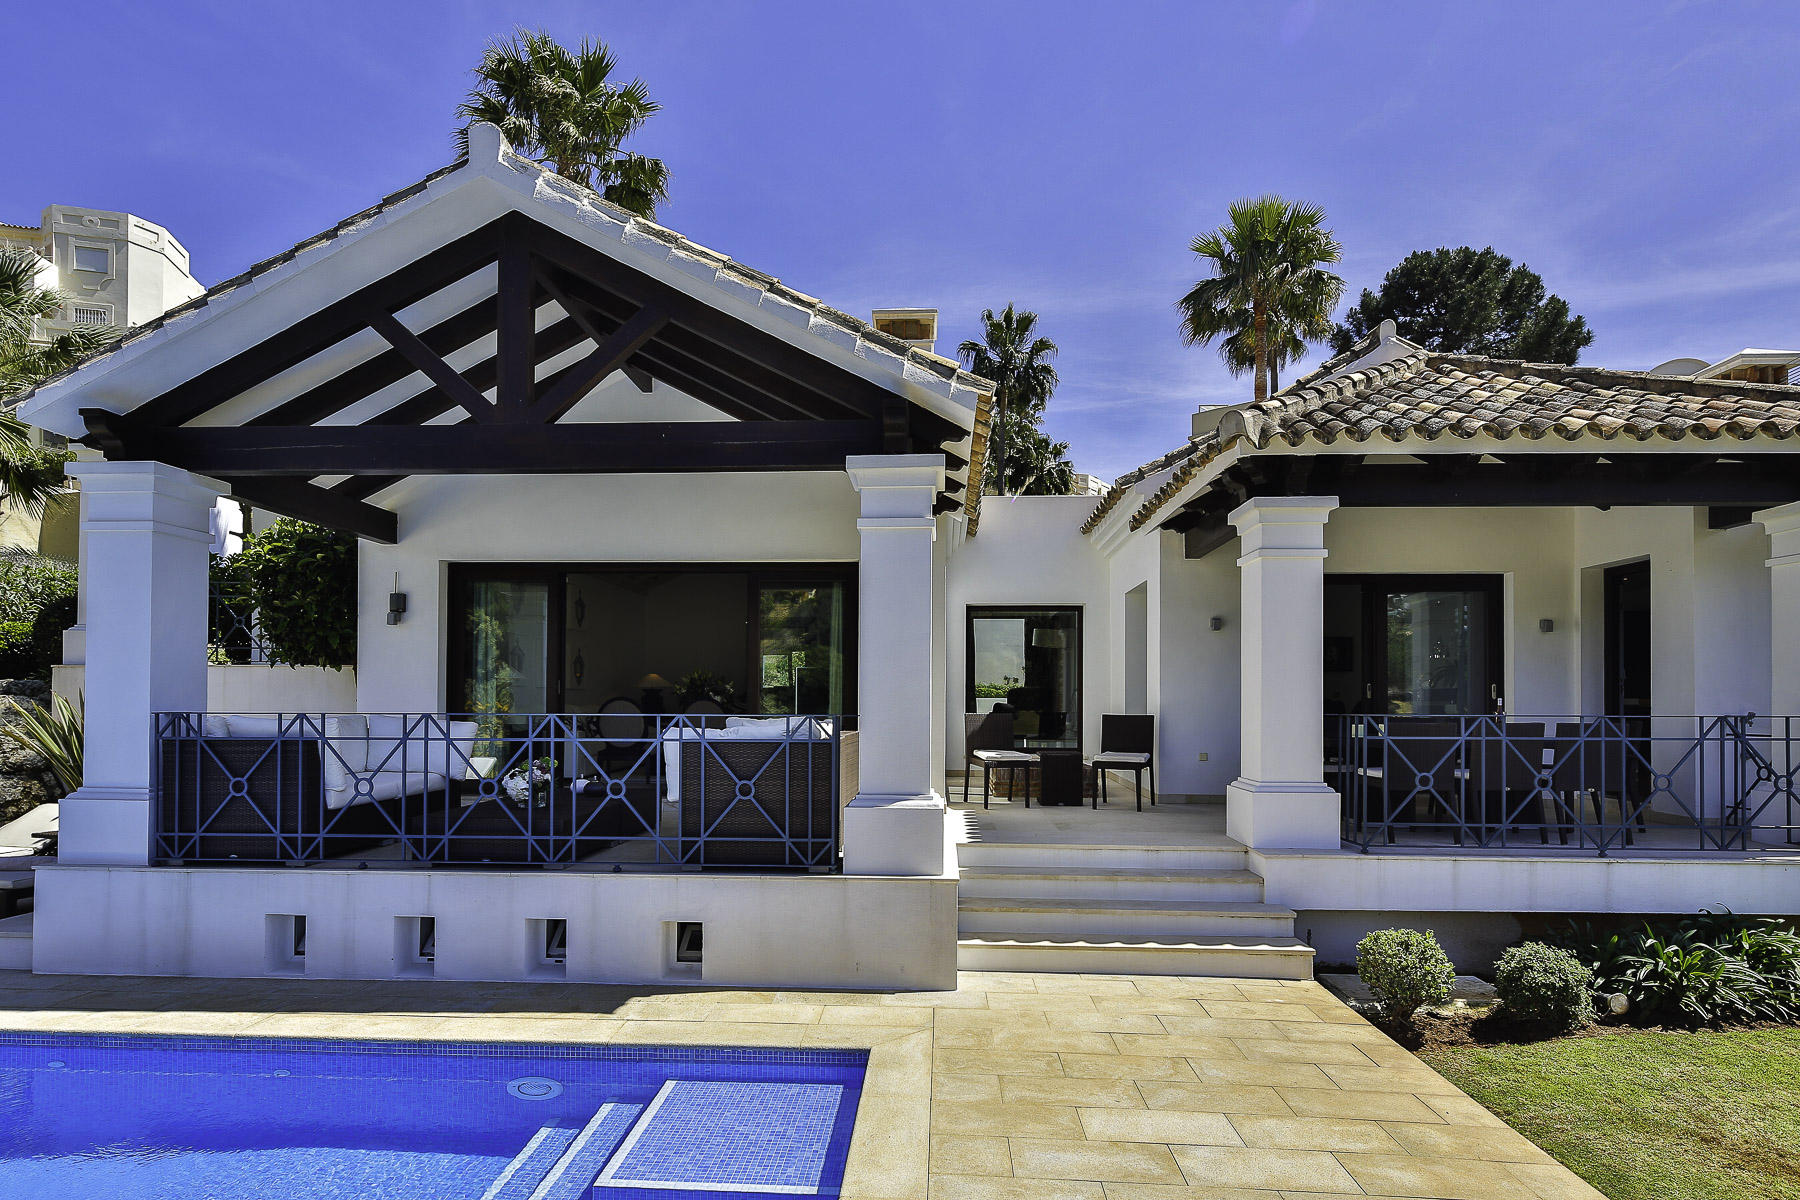 Single Family Home for Sale at Magnificent elegant eclectic style villa, situated front line golf in the presti Other Spain, Other Areas In Spain, Spain